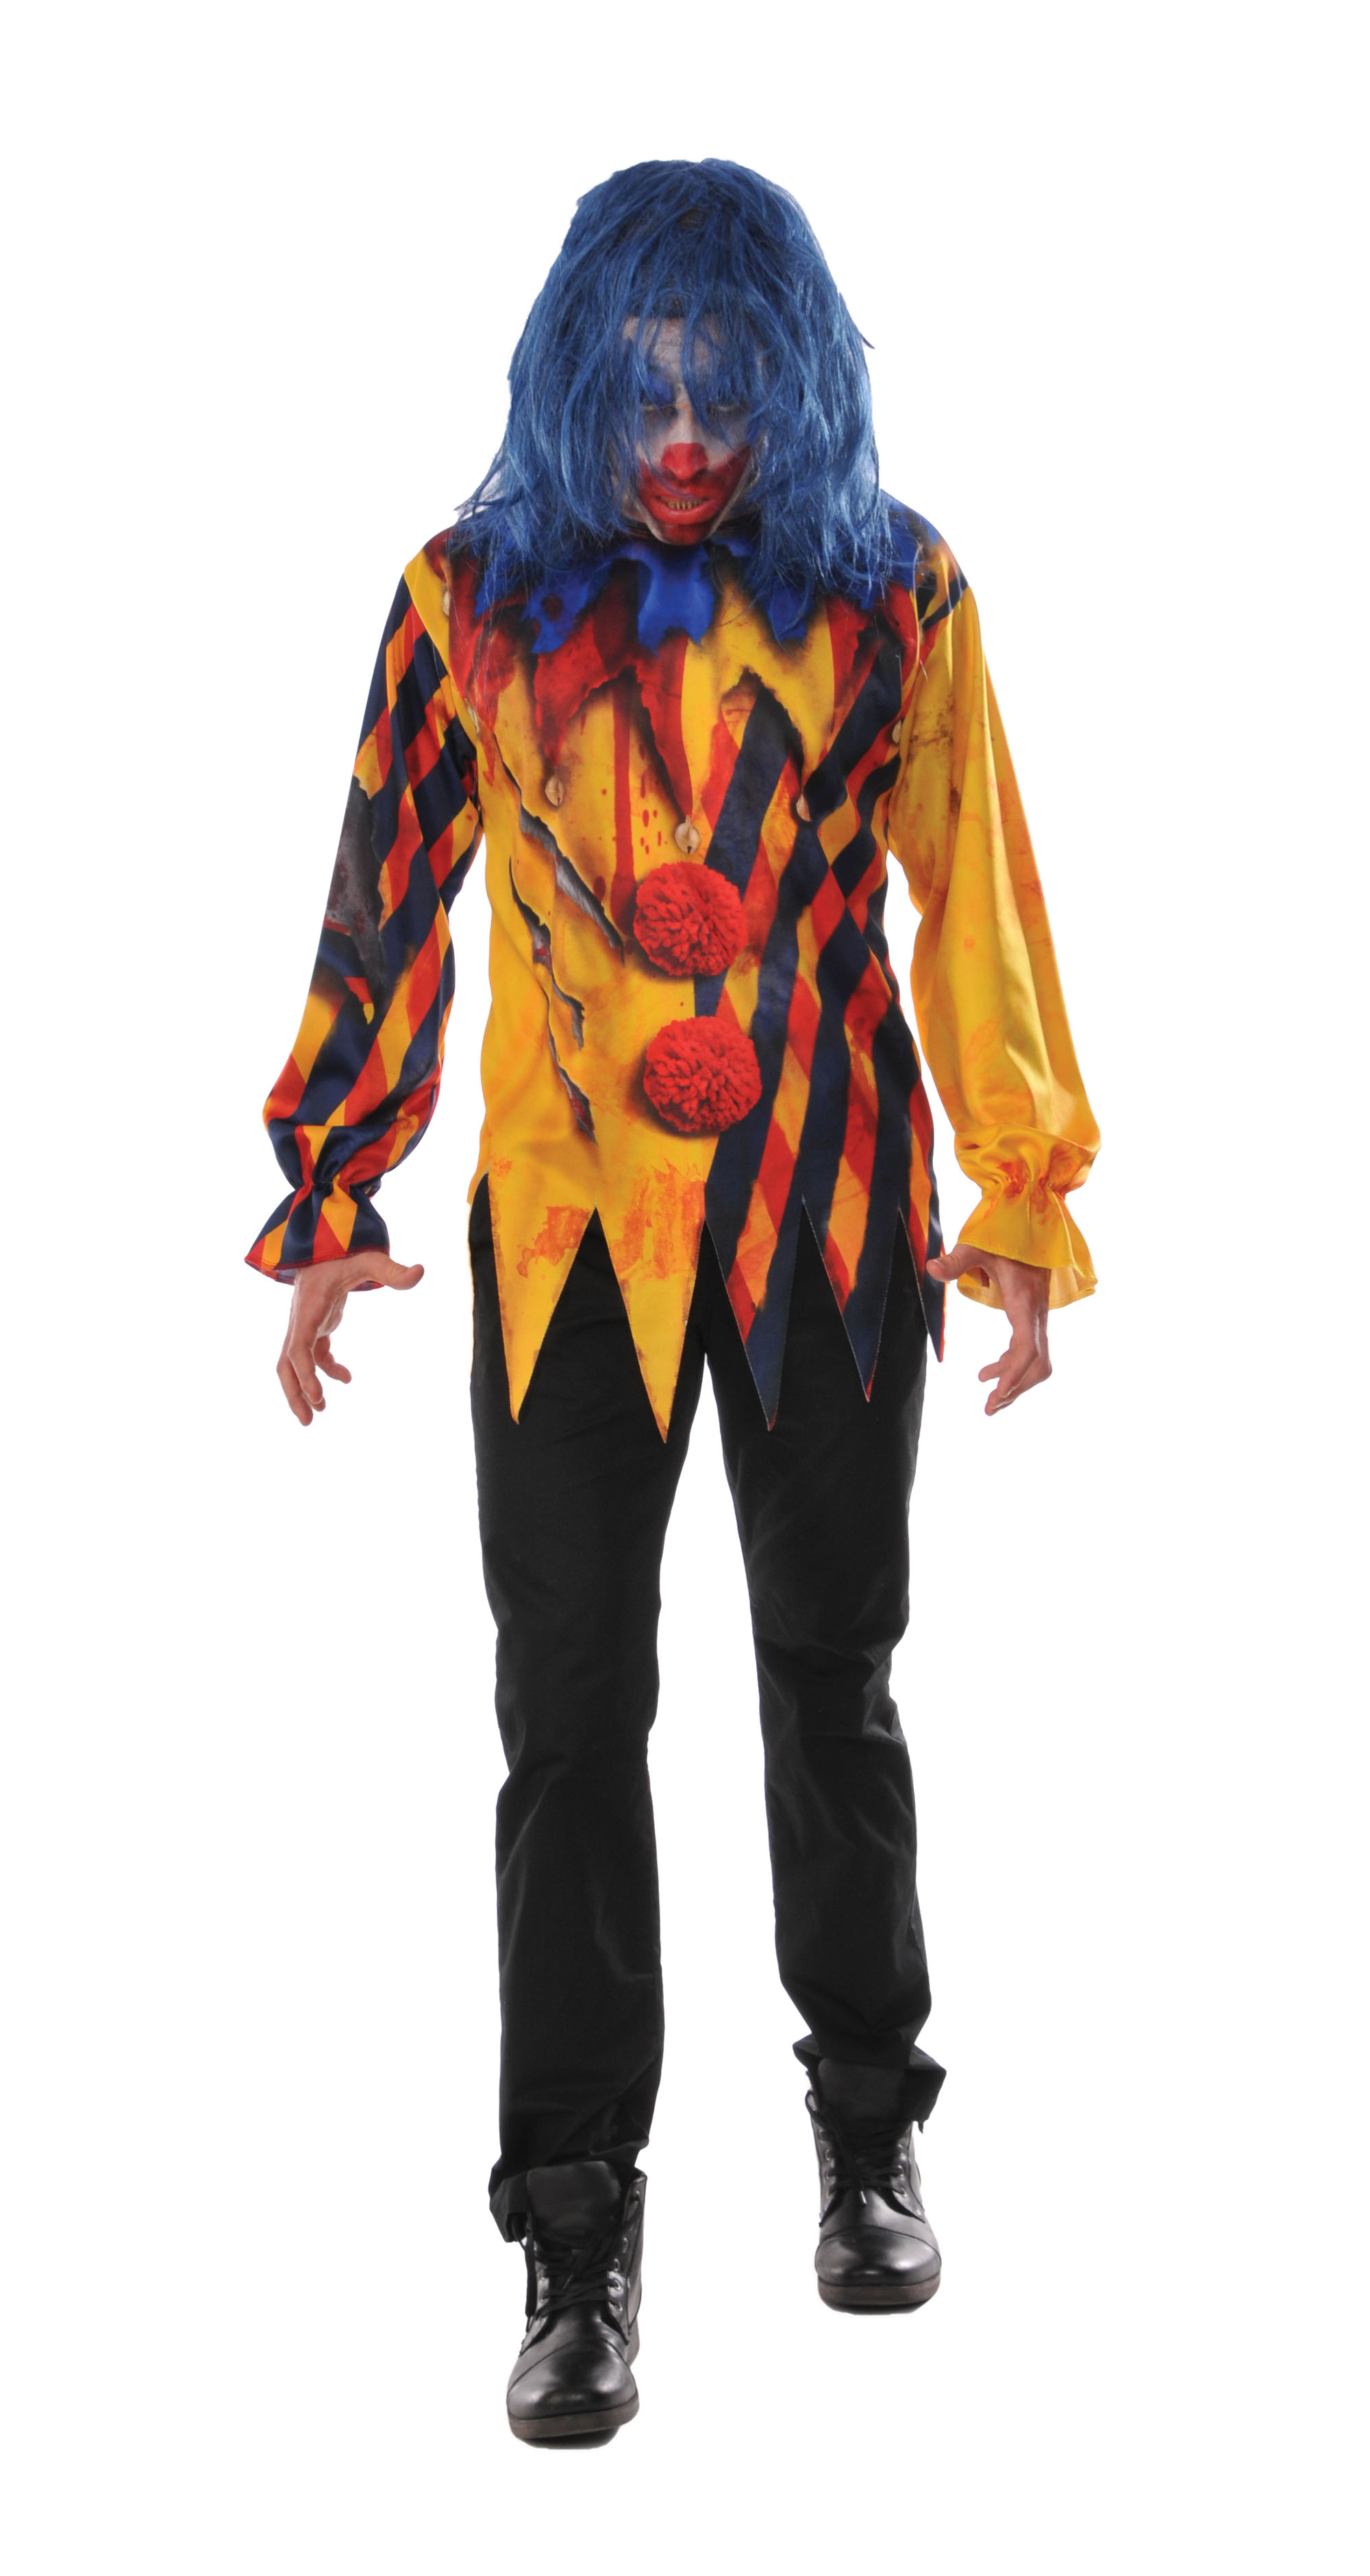 Killer Clown Halloween Costumes For Girls.The Killer Clown